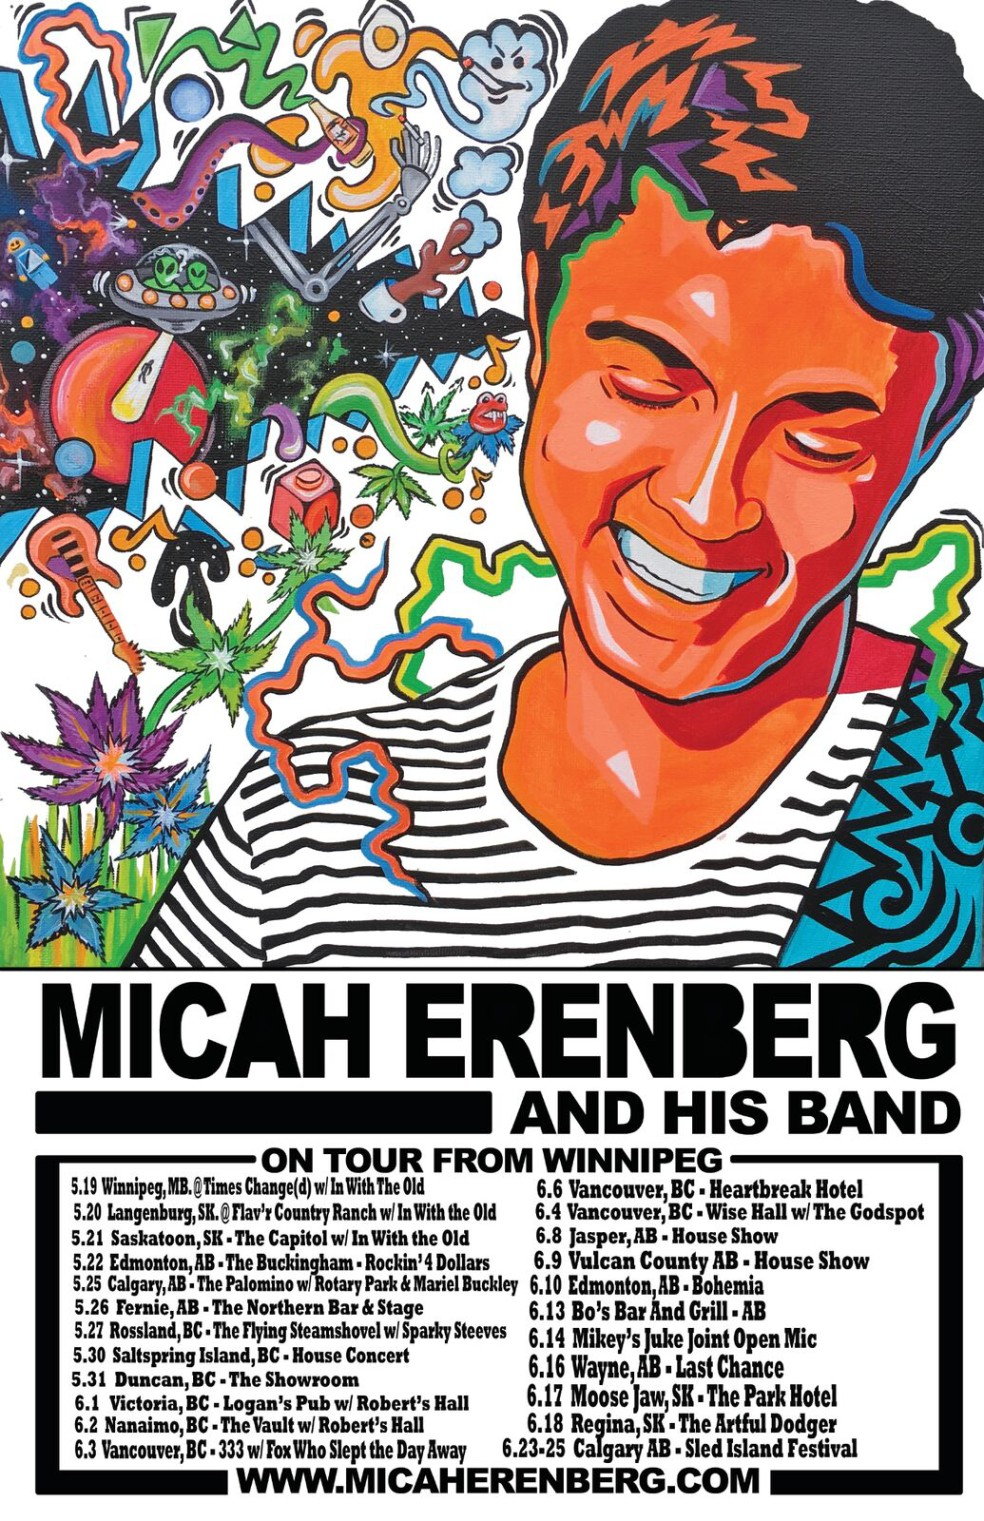 Micah Tour Poster (5.24 update)